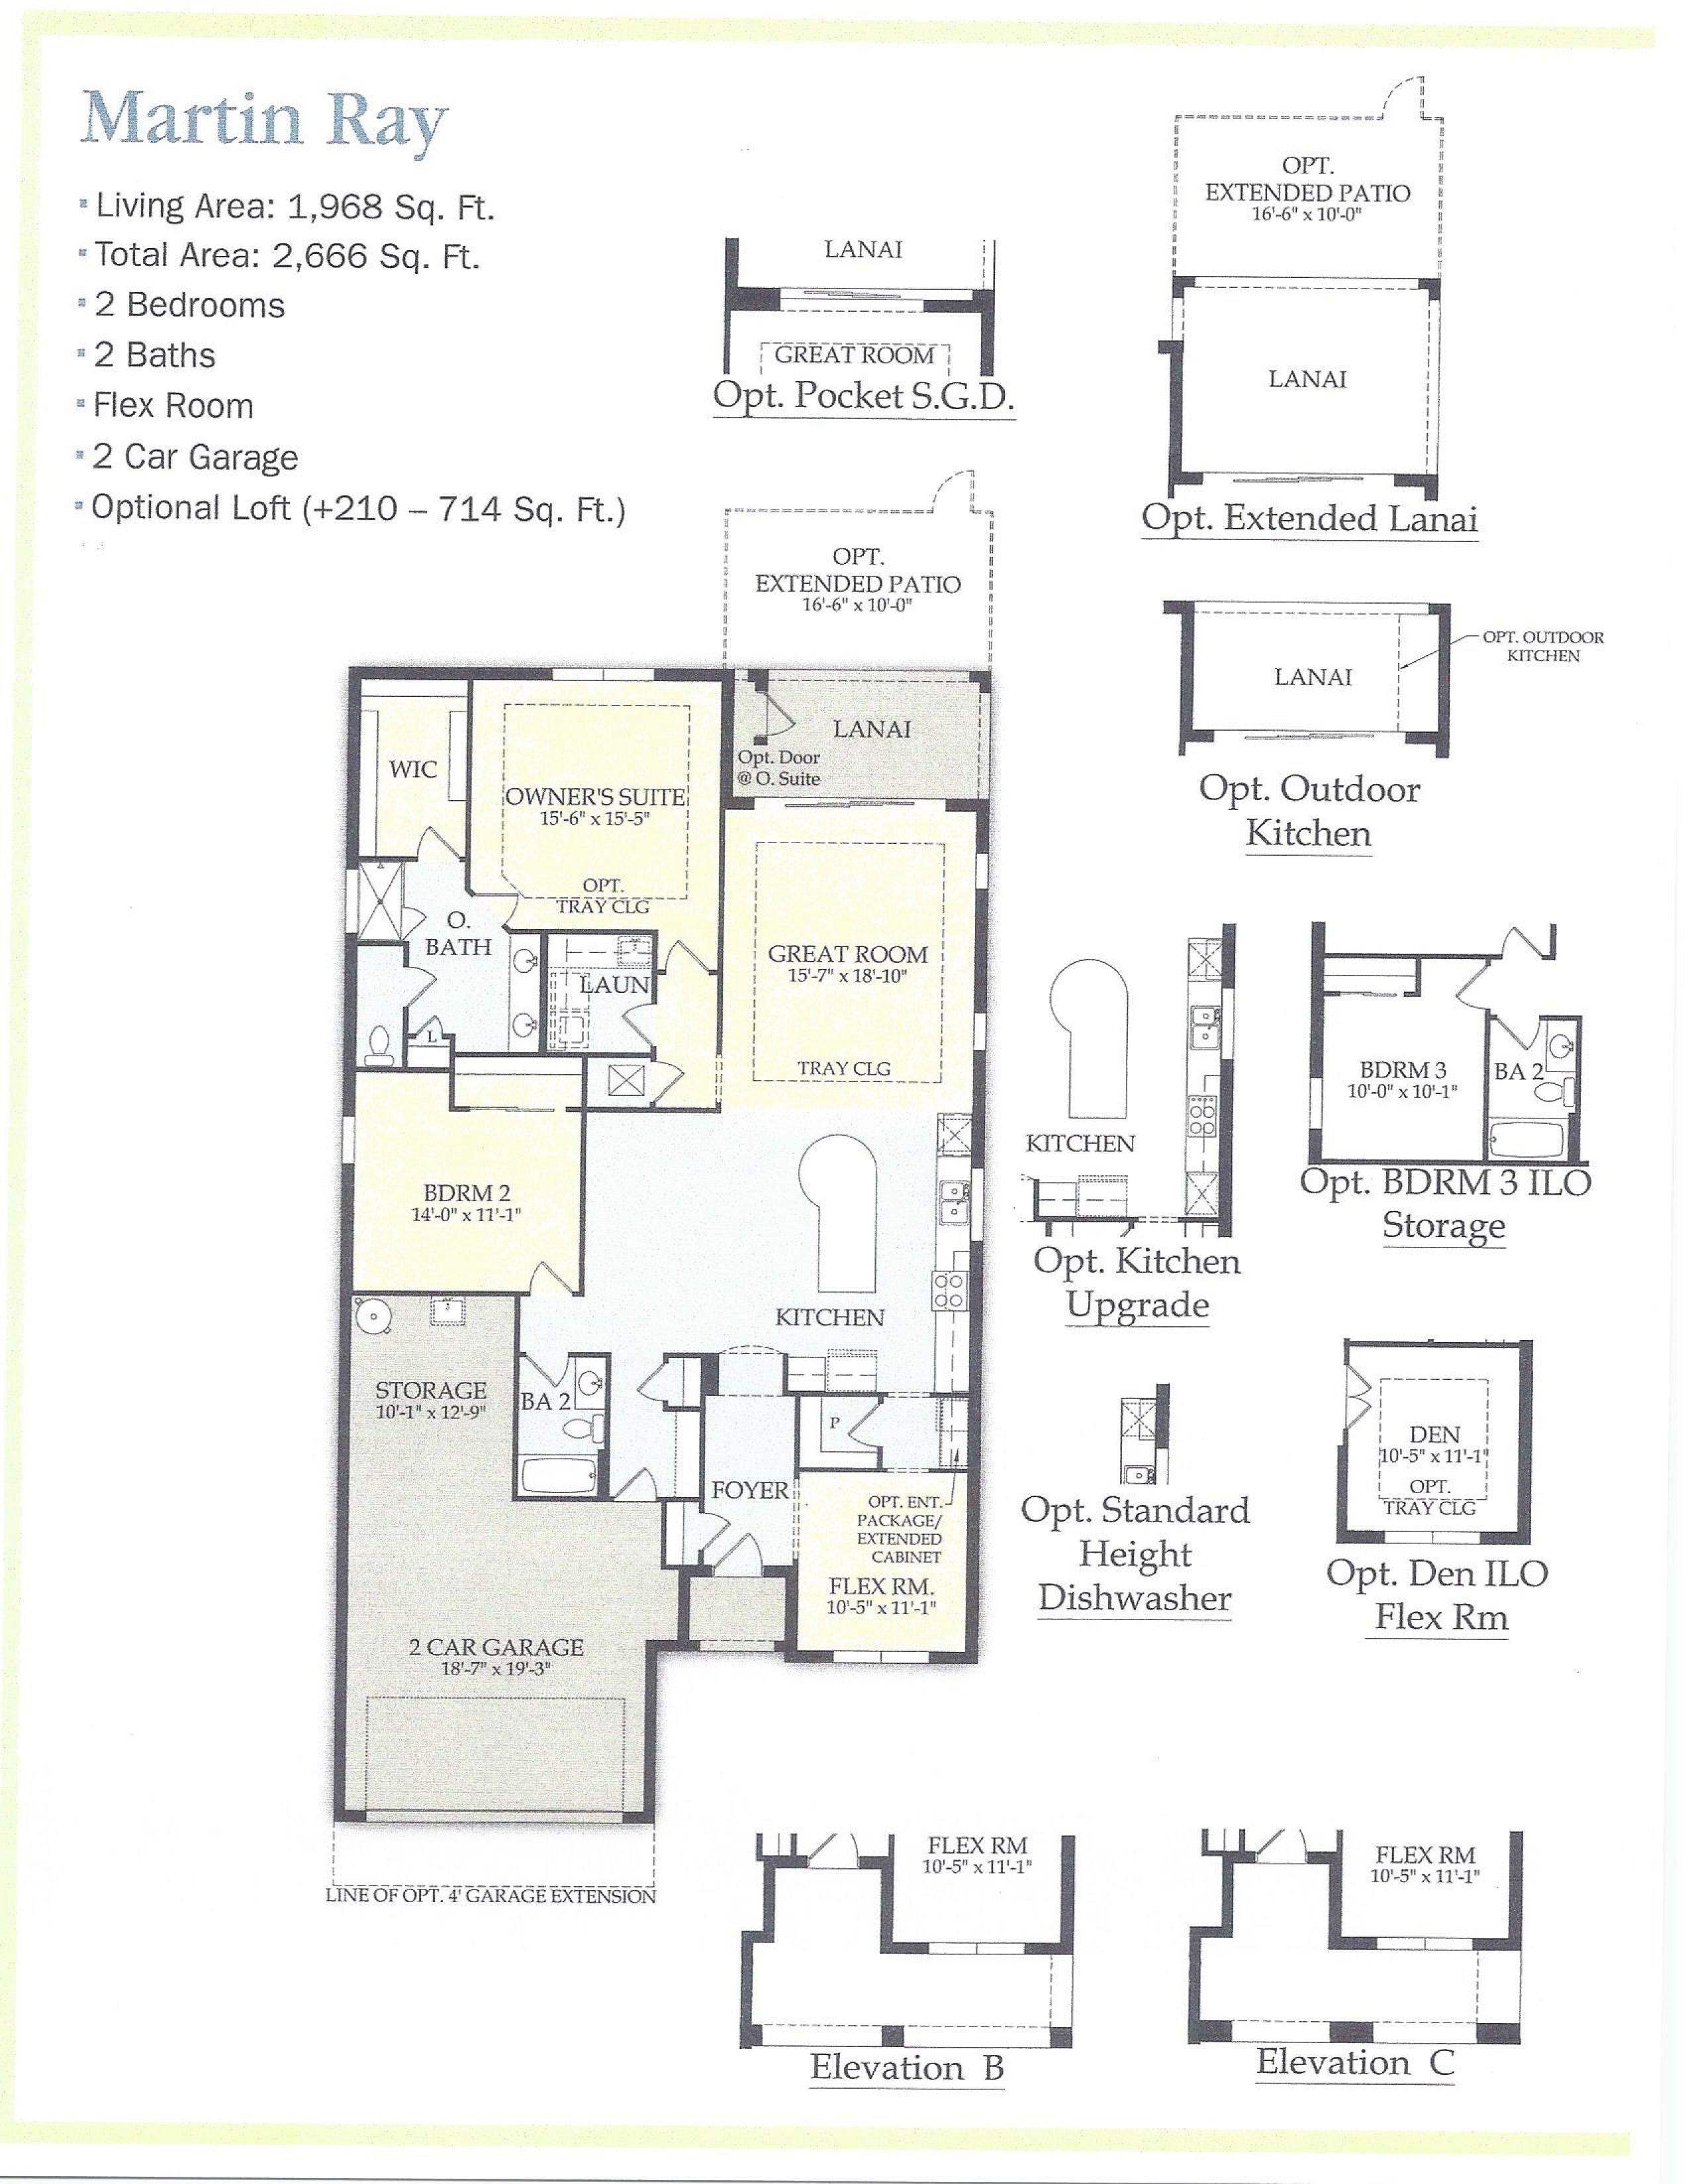 Martin Ray - Floor Plan - Camden Lakes - Naples FL in 2019 ... on palmetto house plan, cherbourg house plan, englewood house plan, genova house plan, waterford house plan, villa cornaro house plan, long island house plan, sayulita house plan, geneva house plan, destin house plan, biloxi house plan, atlantic beach house plan, nantahala house plan, mulberry house plan, pine ridge house plan, new home house plan, avignon house plan, potter house plan, valencia house plan, dresden house plan,